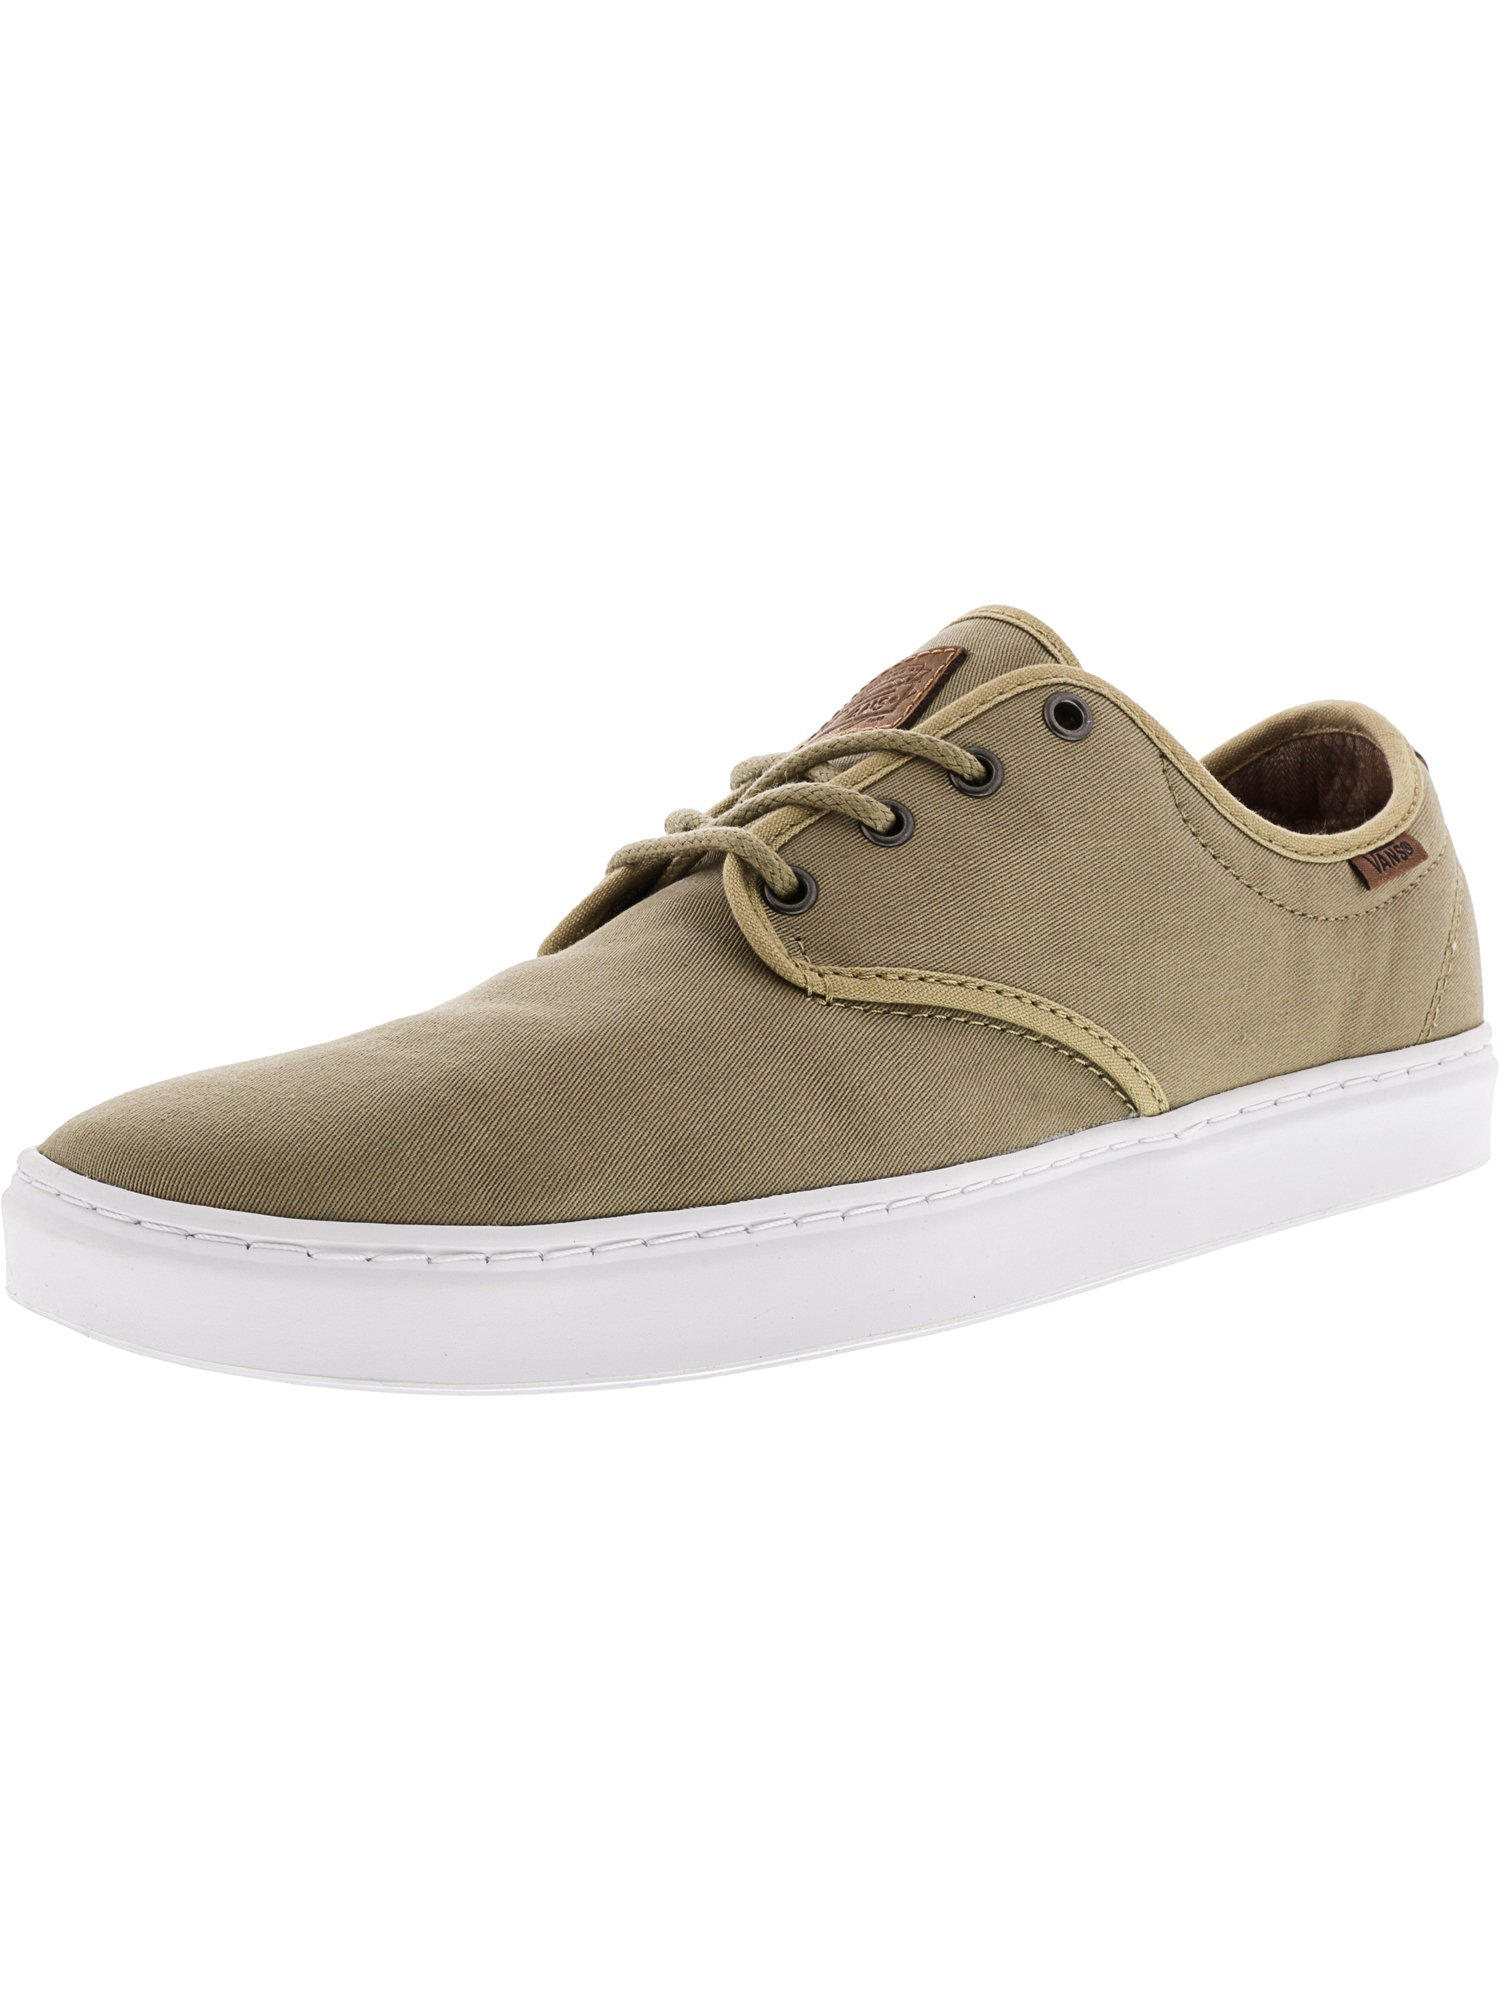 Vans Men's Ludlow + Textile And Leather Khaki / White Ankle-High Skateboarding Shoe - 11M